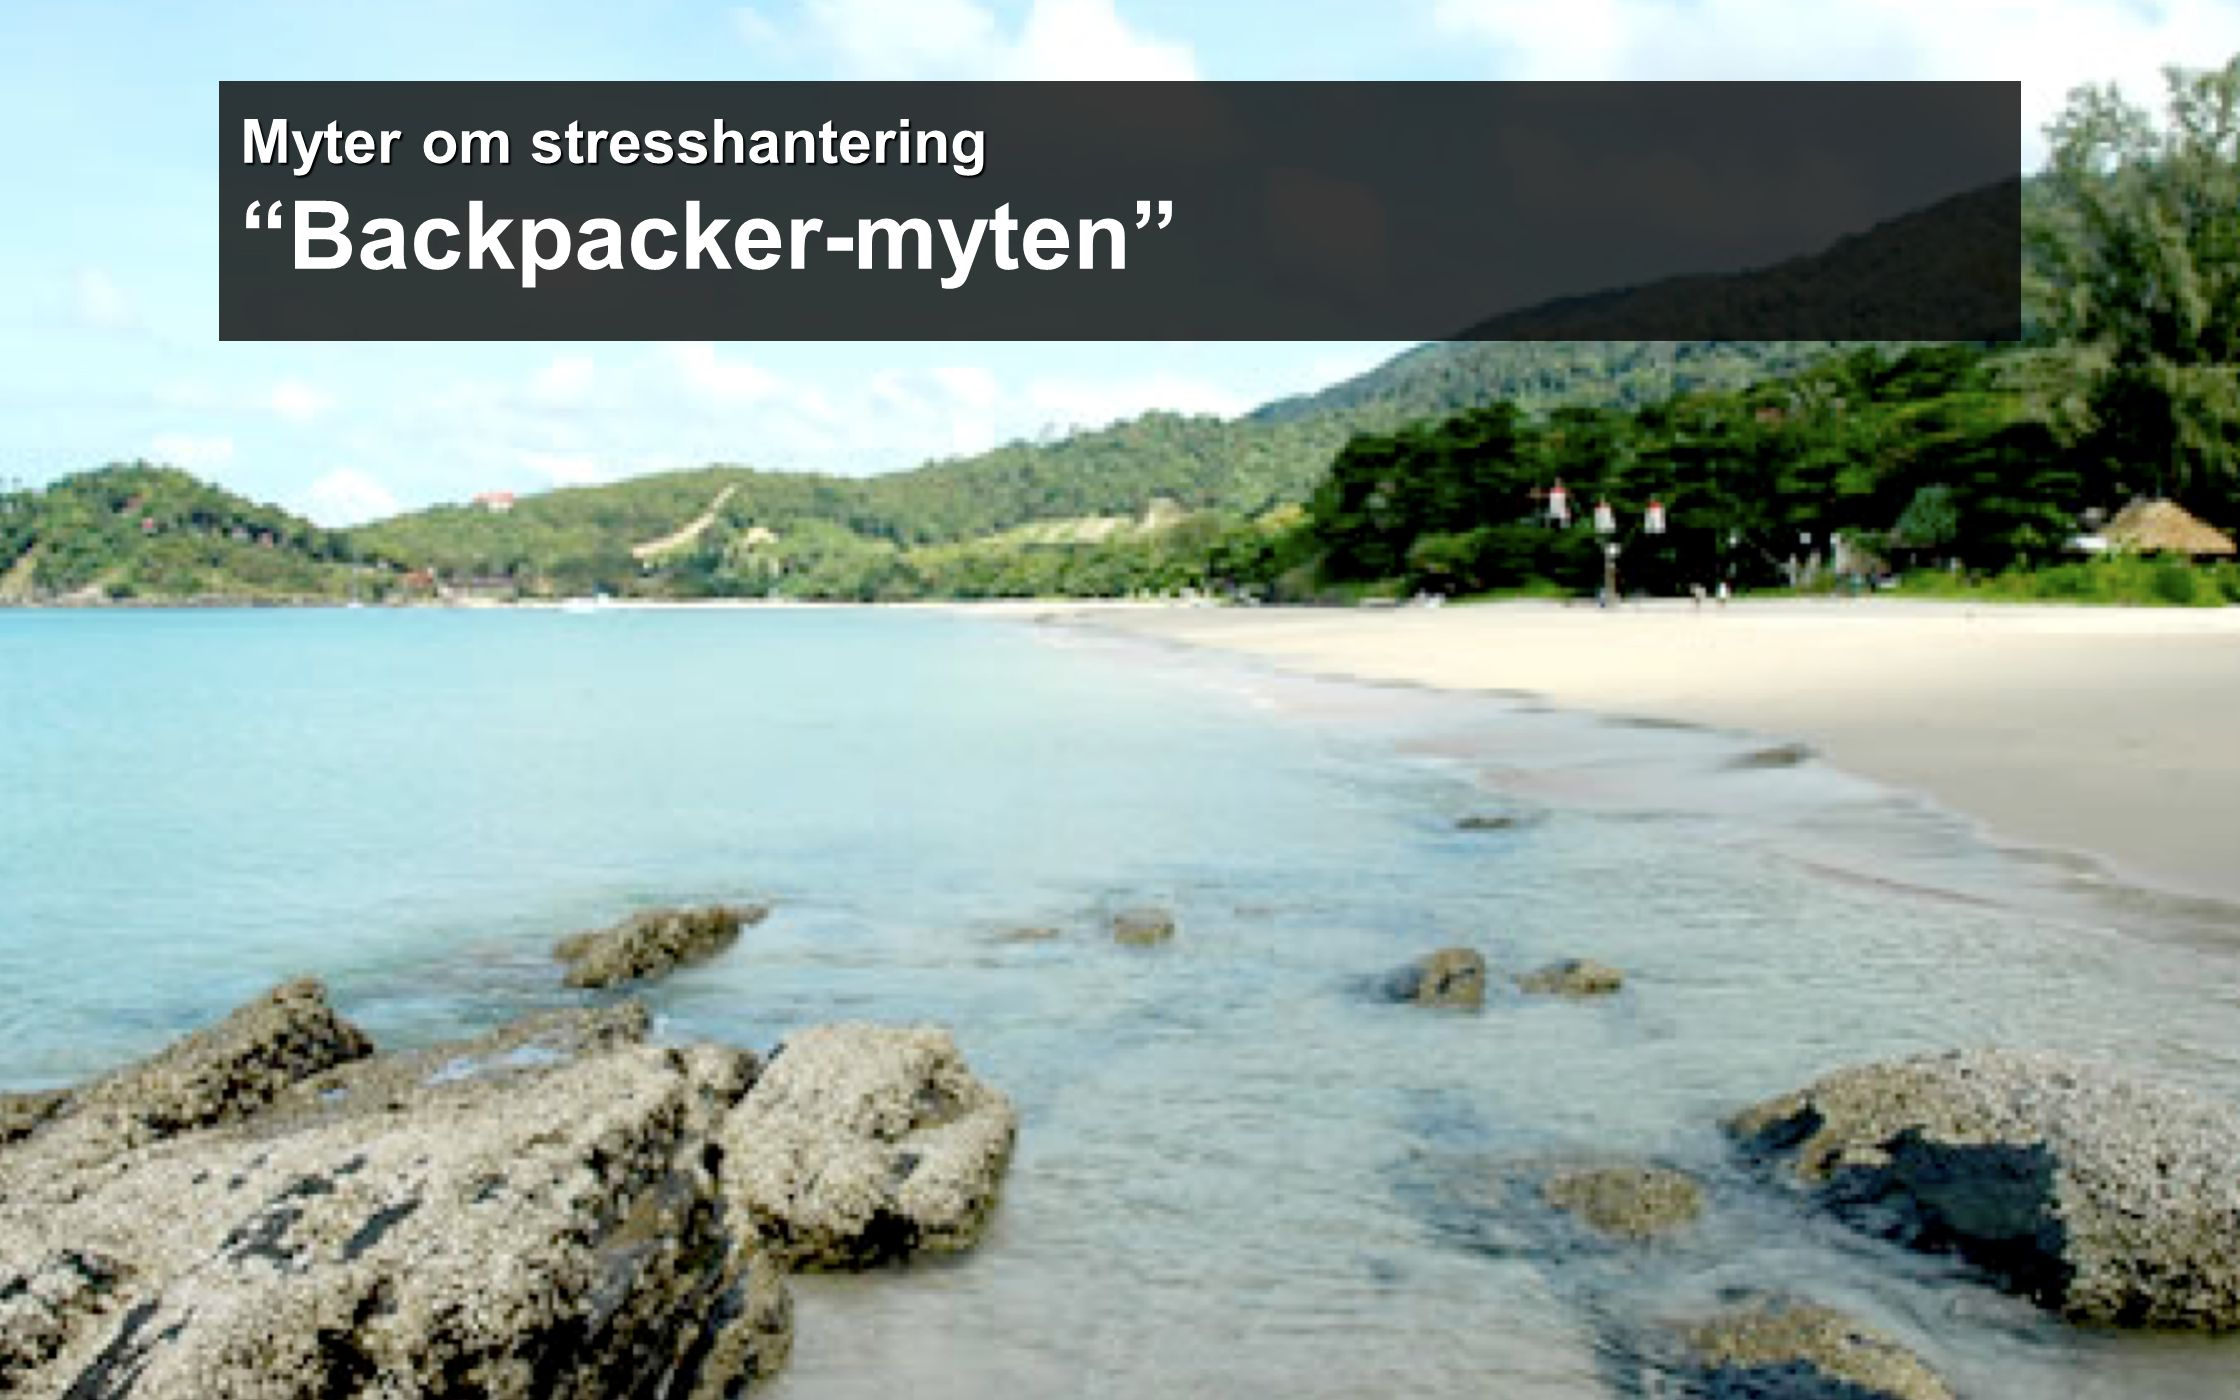 Myter om stresshantering Backpacker-myten